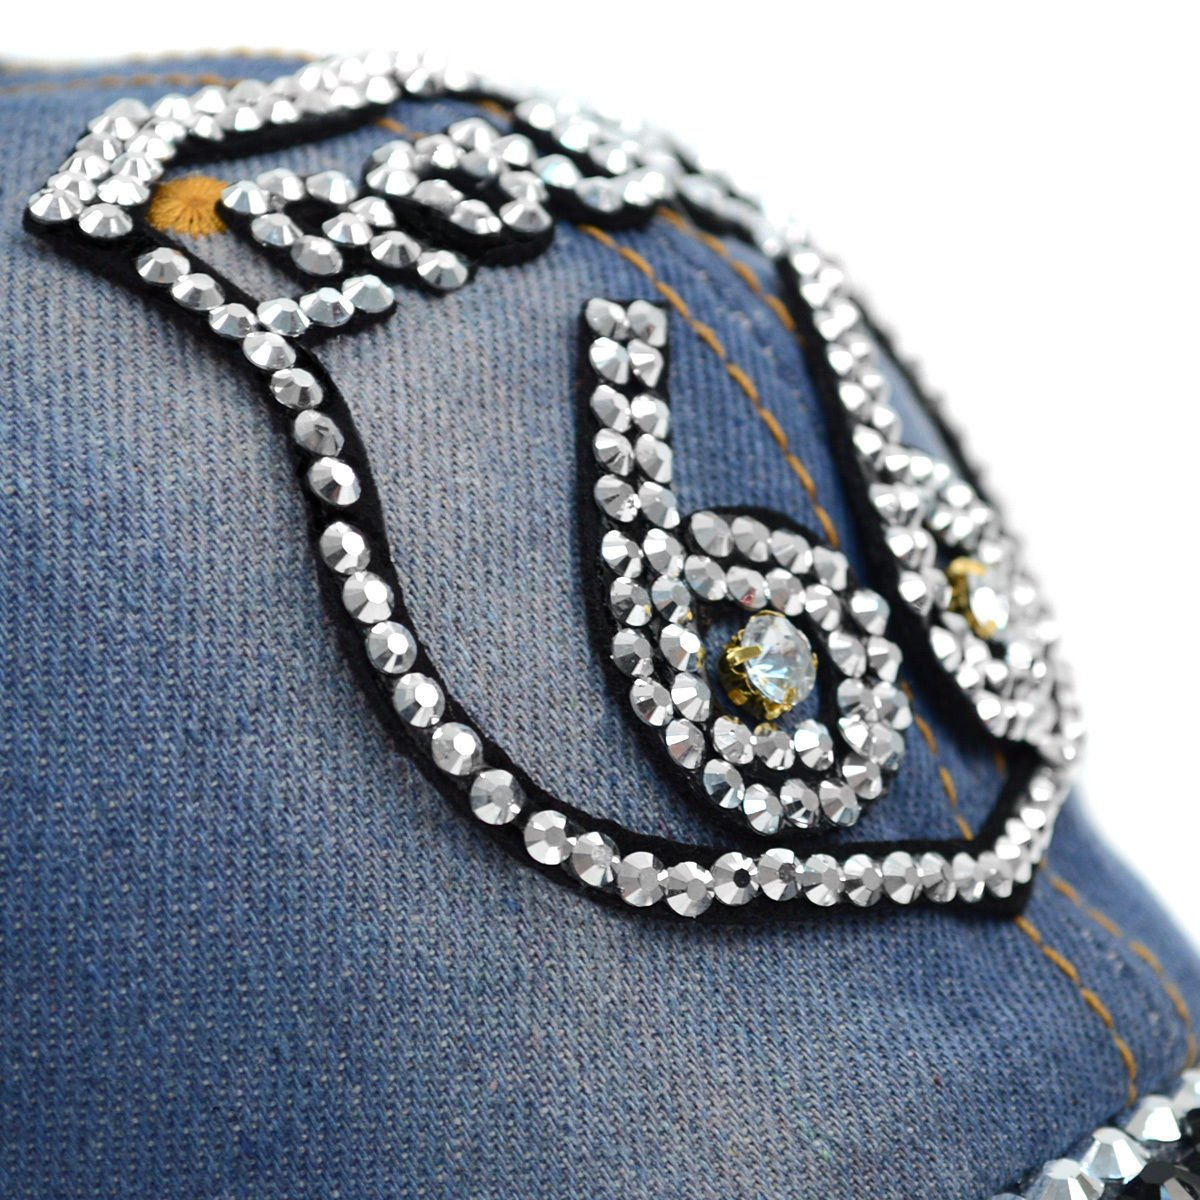 f376525d1 Ladies-Denim-Foxy-Studded-Cap-CP9605 thumbnail 7